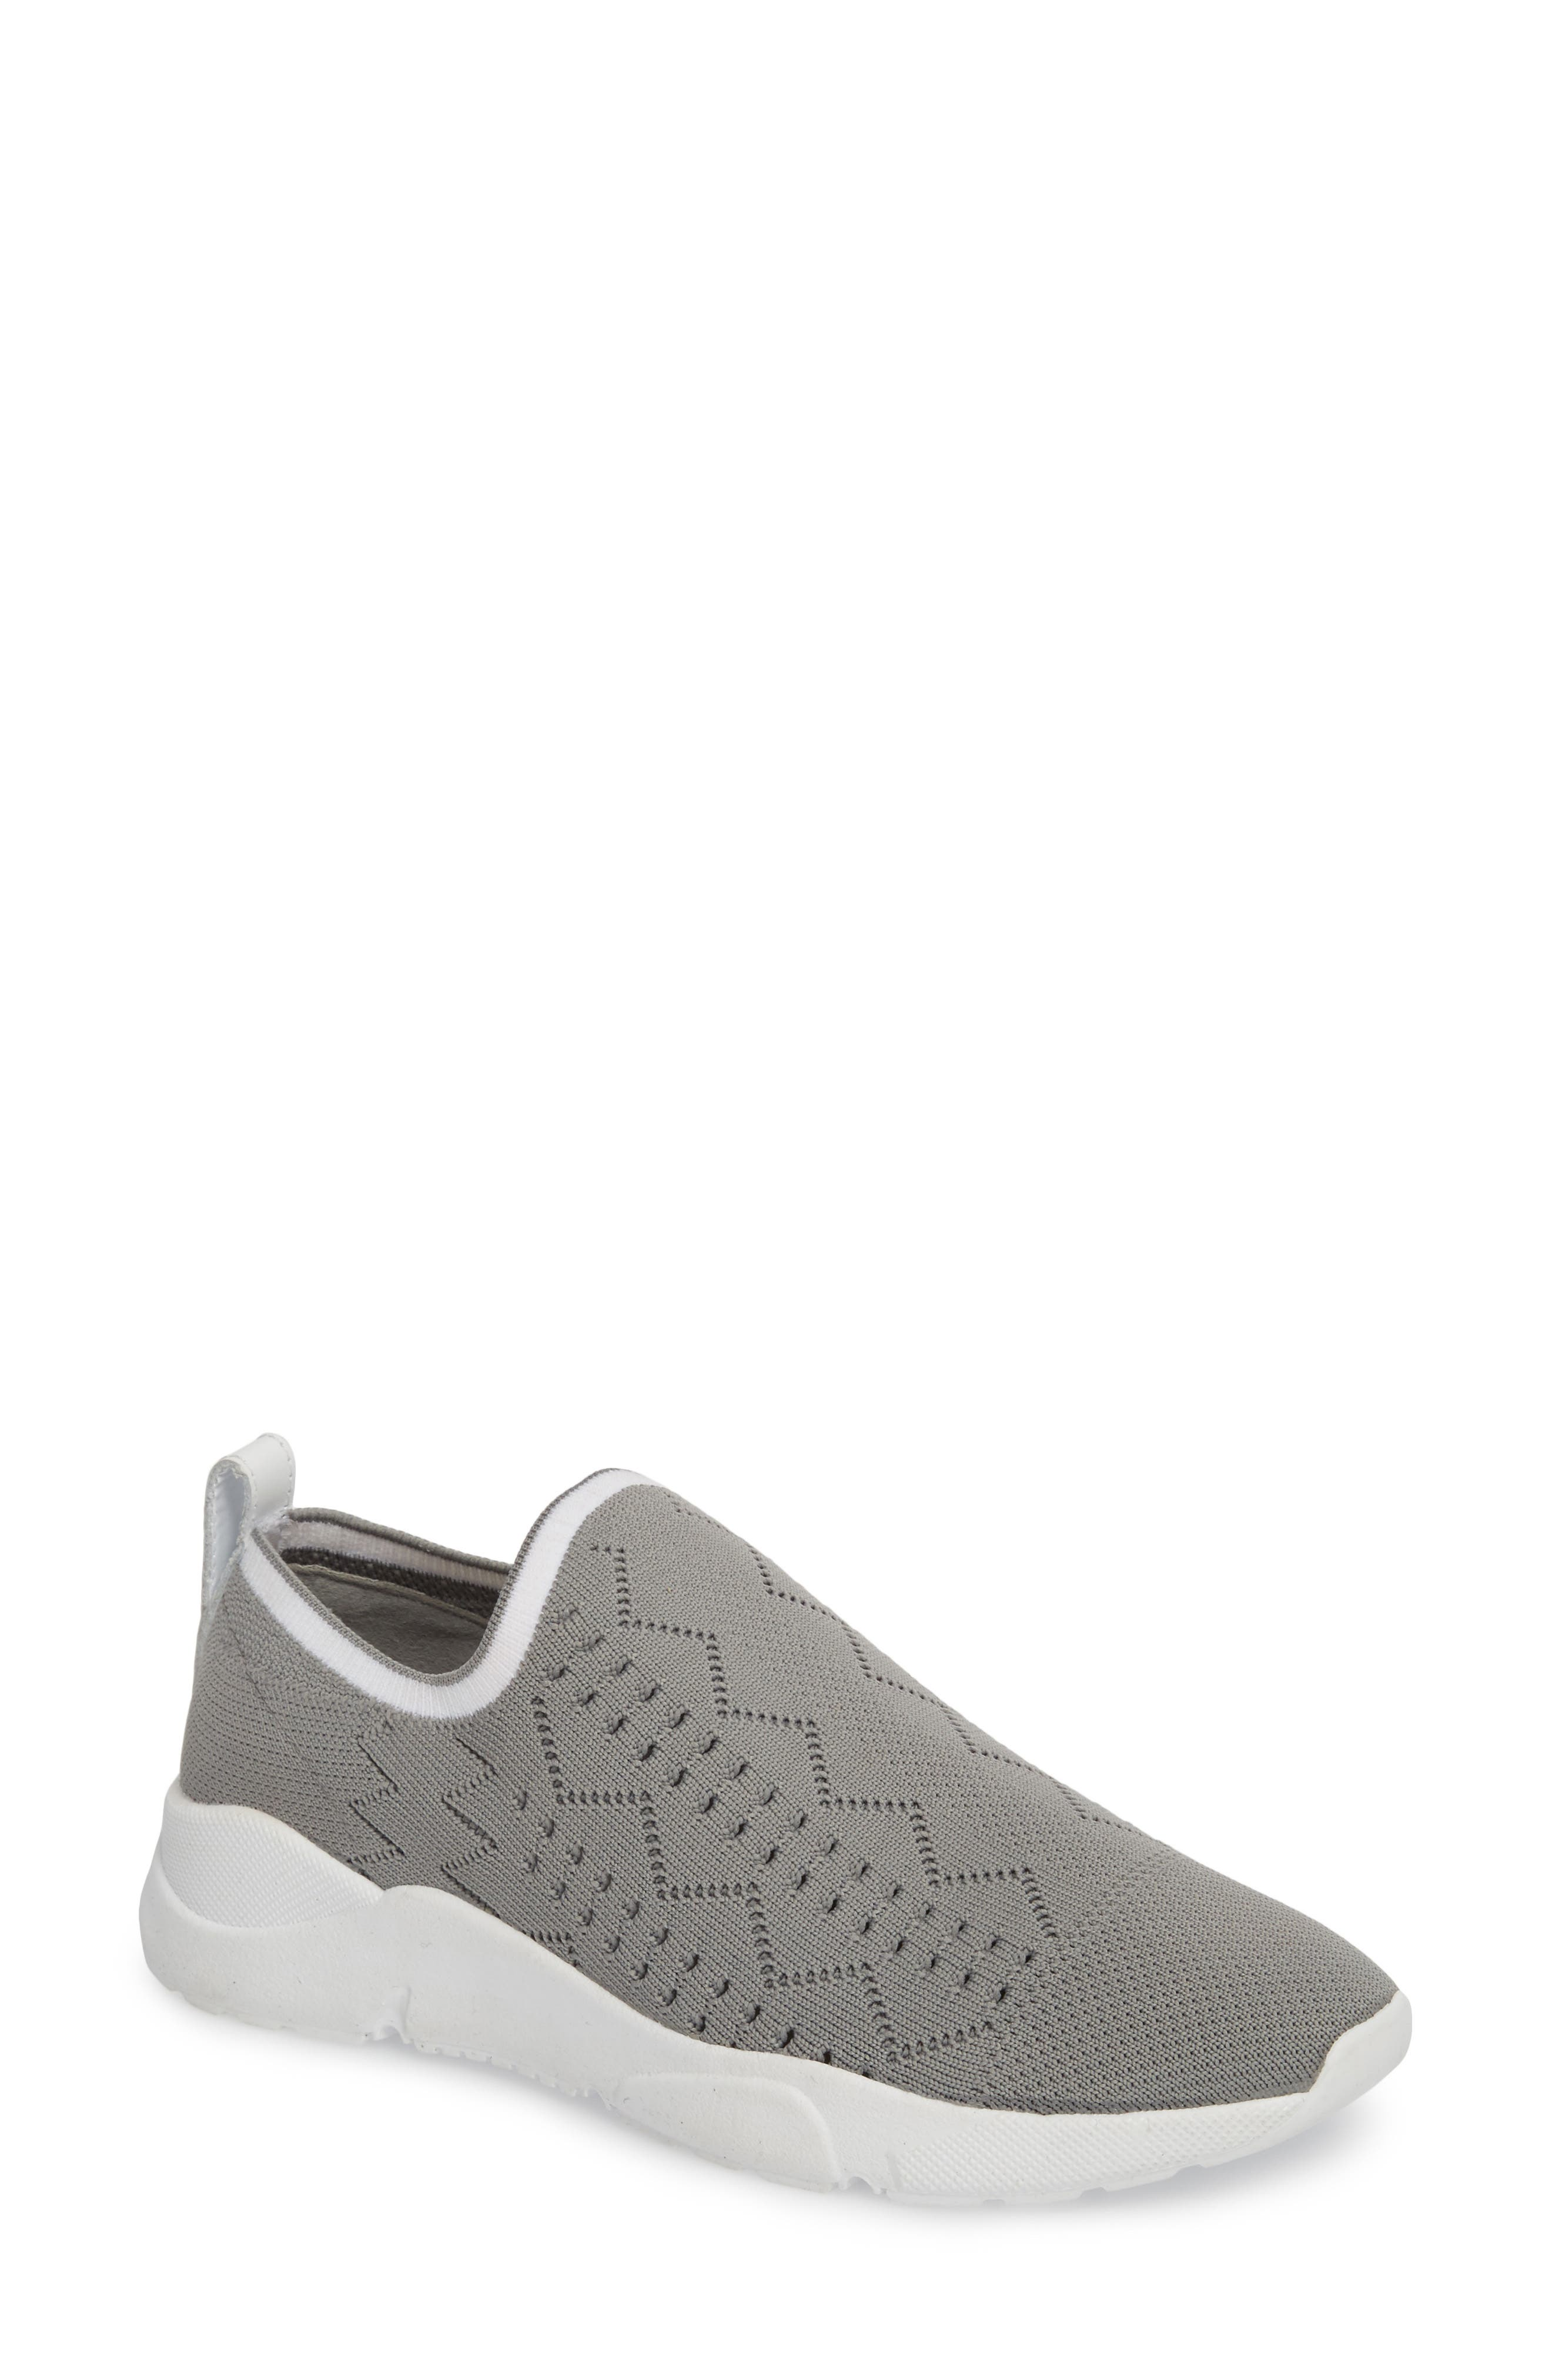 Karrie Slip-On Sneaker,                         Main,                         color, Grey Stretch Fabric